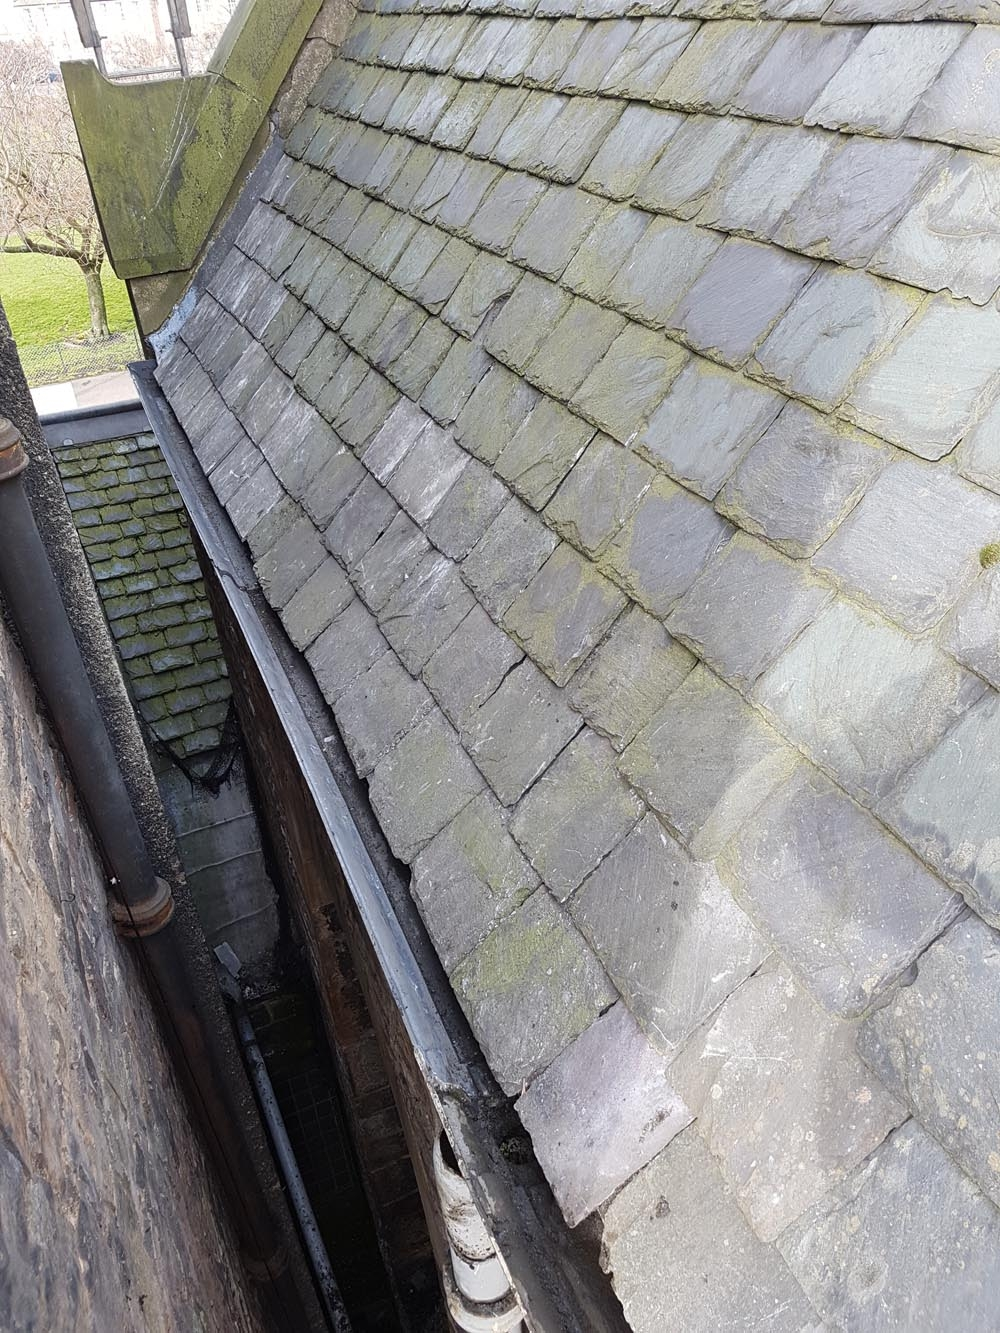 Looking along the newly fitted gutters with all the slates patched back in